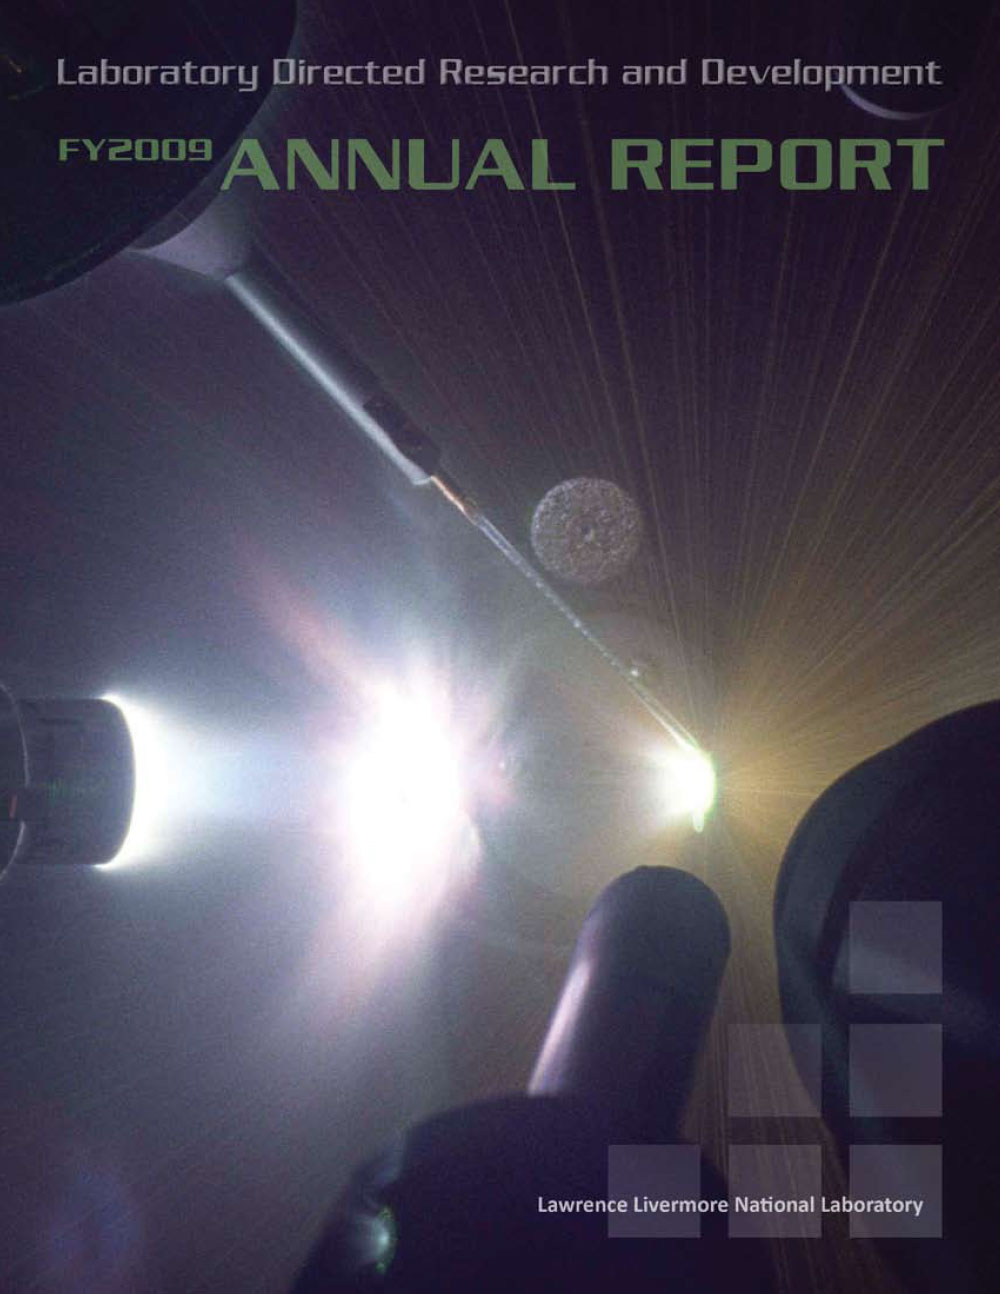 CoverofLLNLFY2009LDRD-AnnualReport